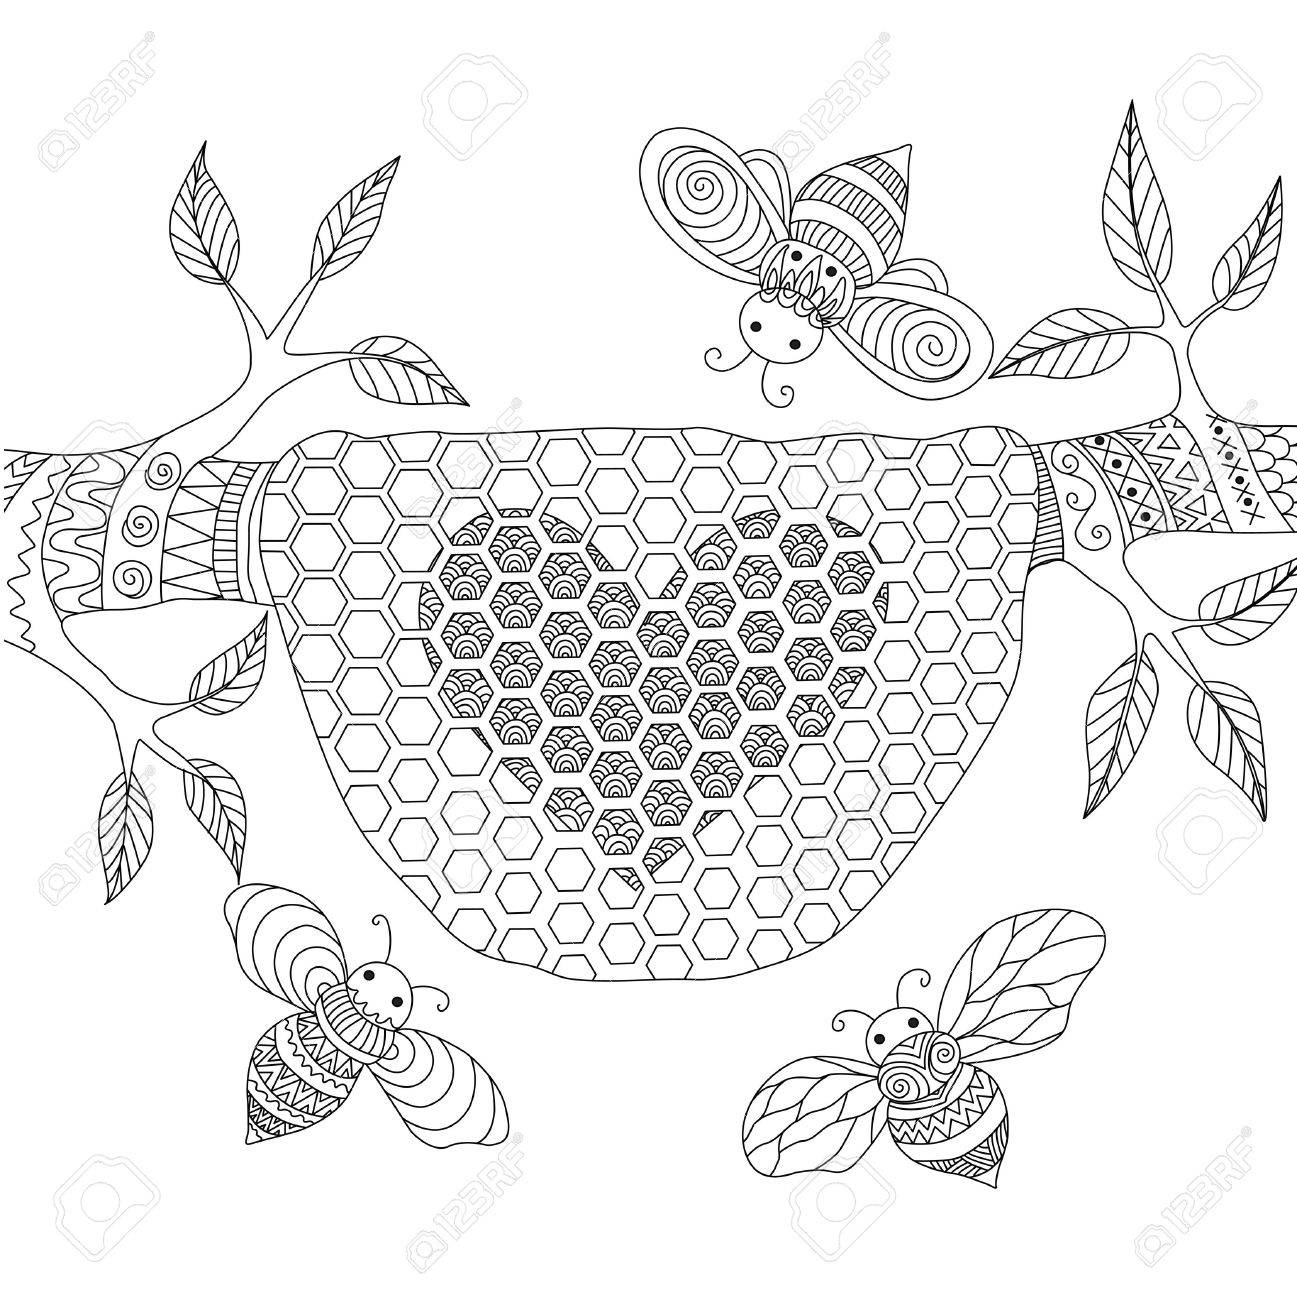 1297x1300 Line Art Design Of Honey Bees Flying Around Beehive For Coloring